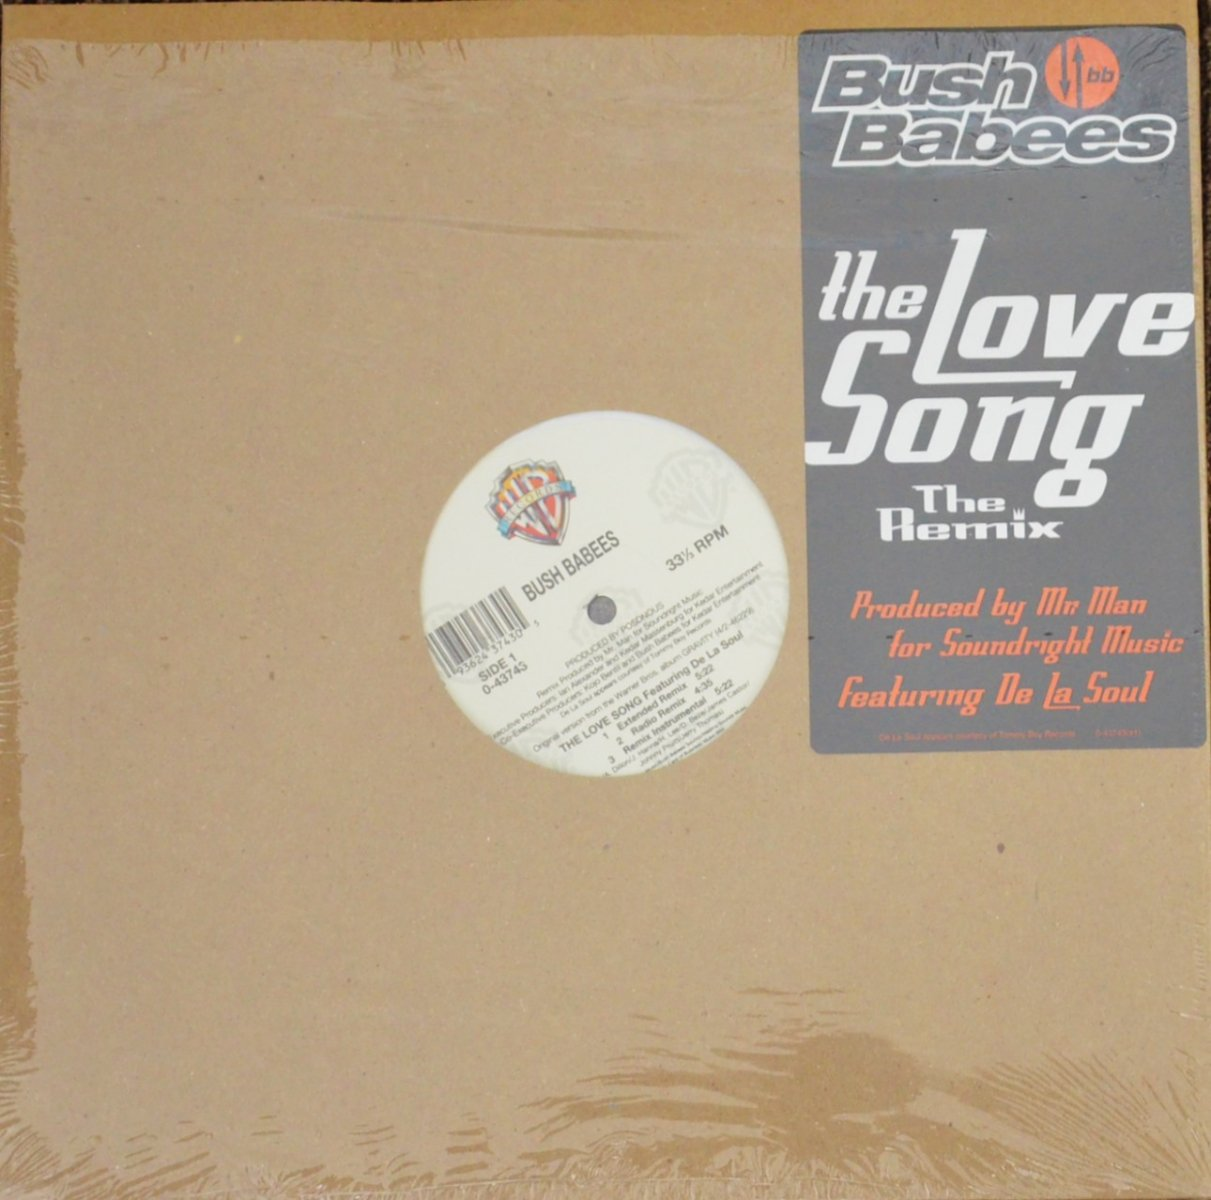 BUSH BABEES / THE LOVE SONG (THE REMIX) (12